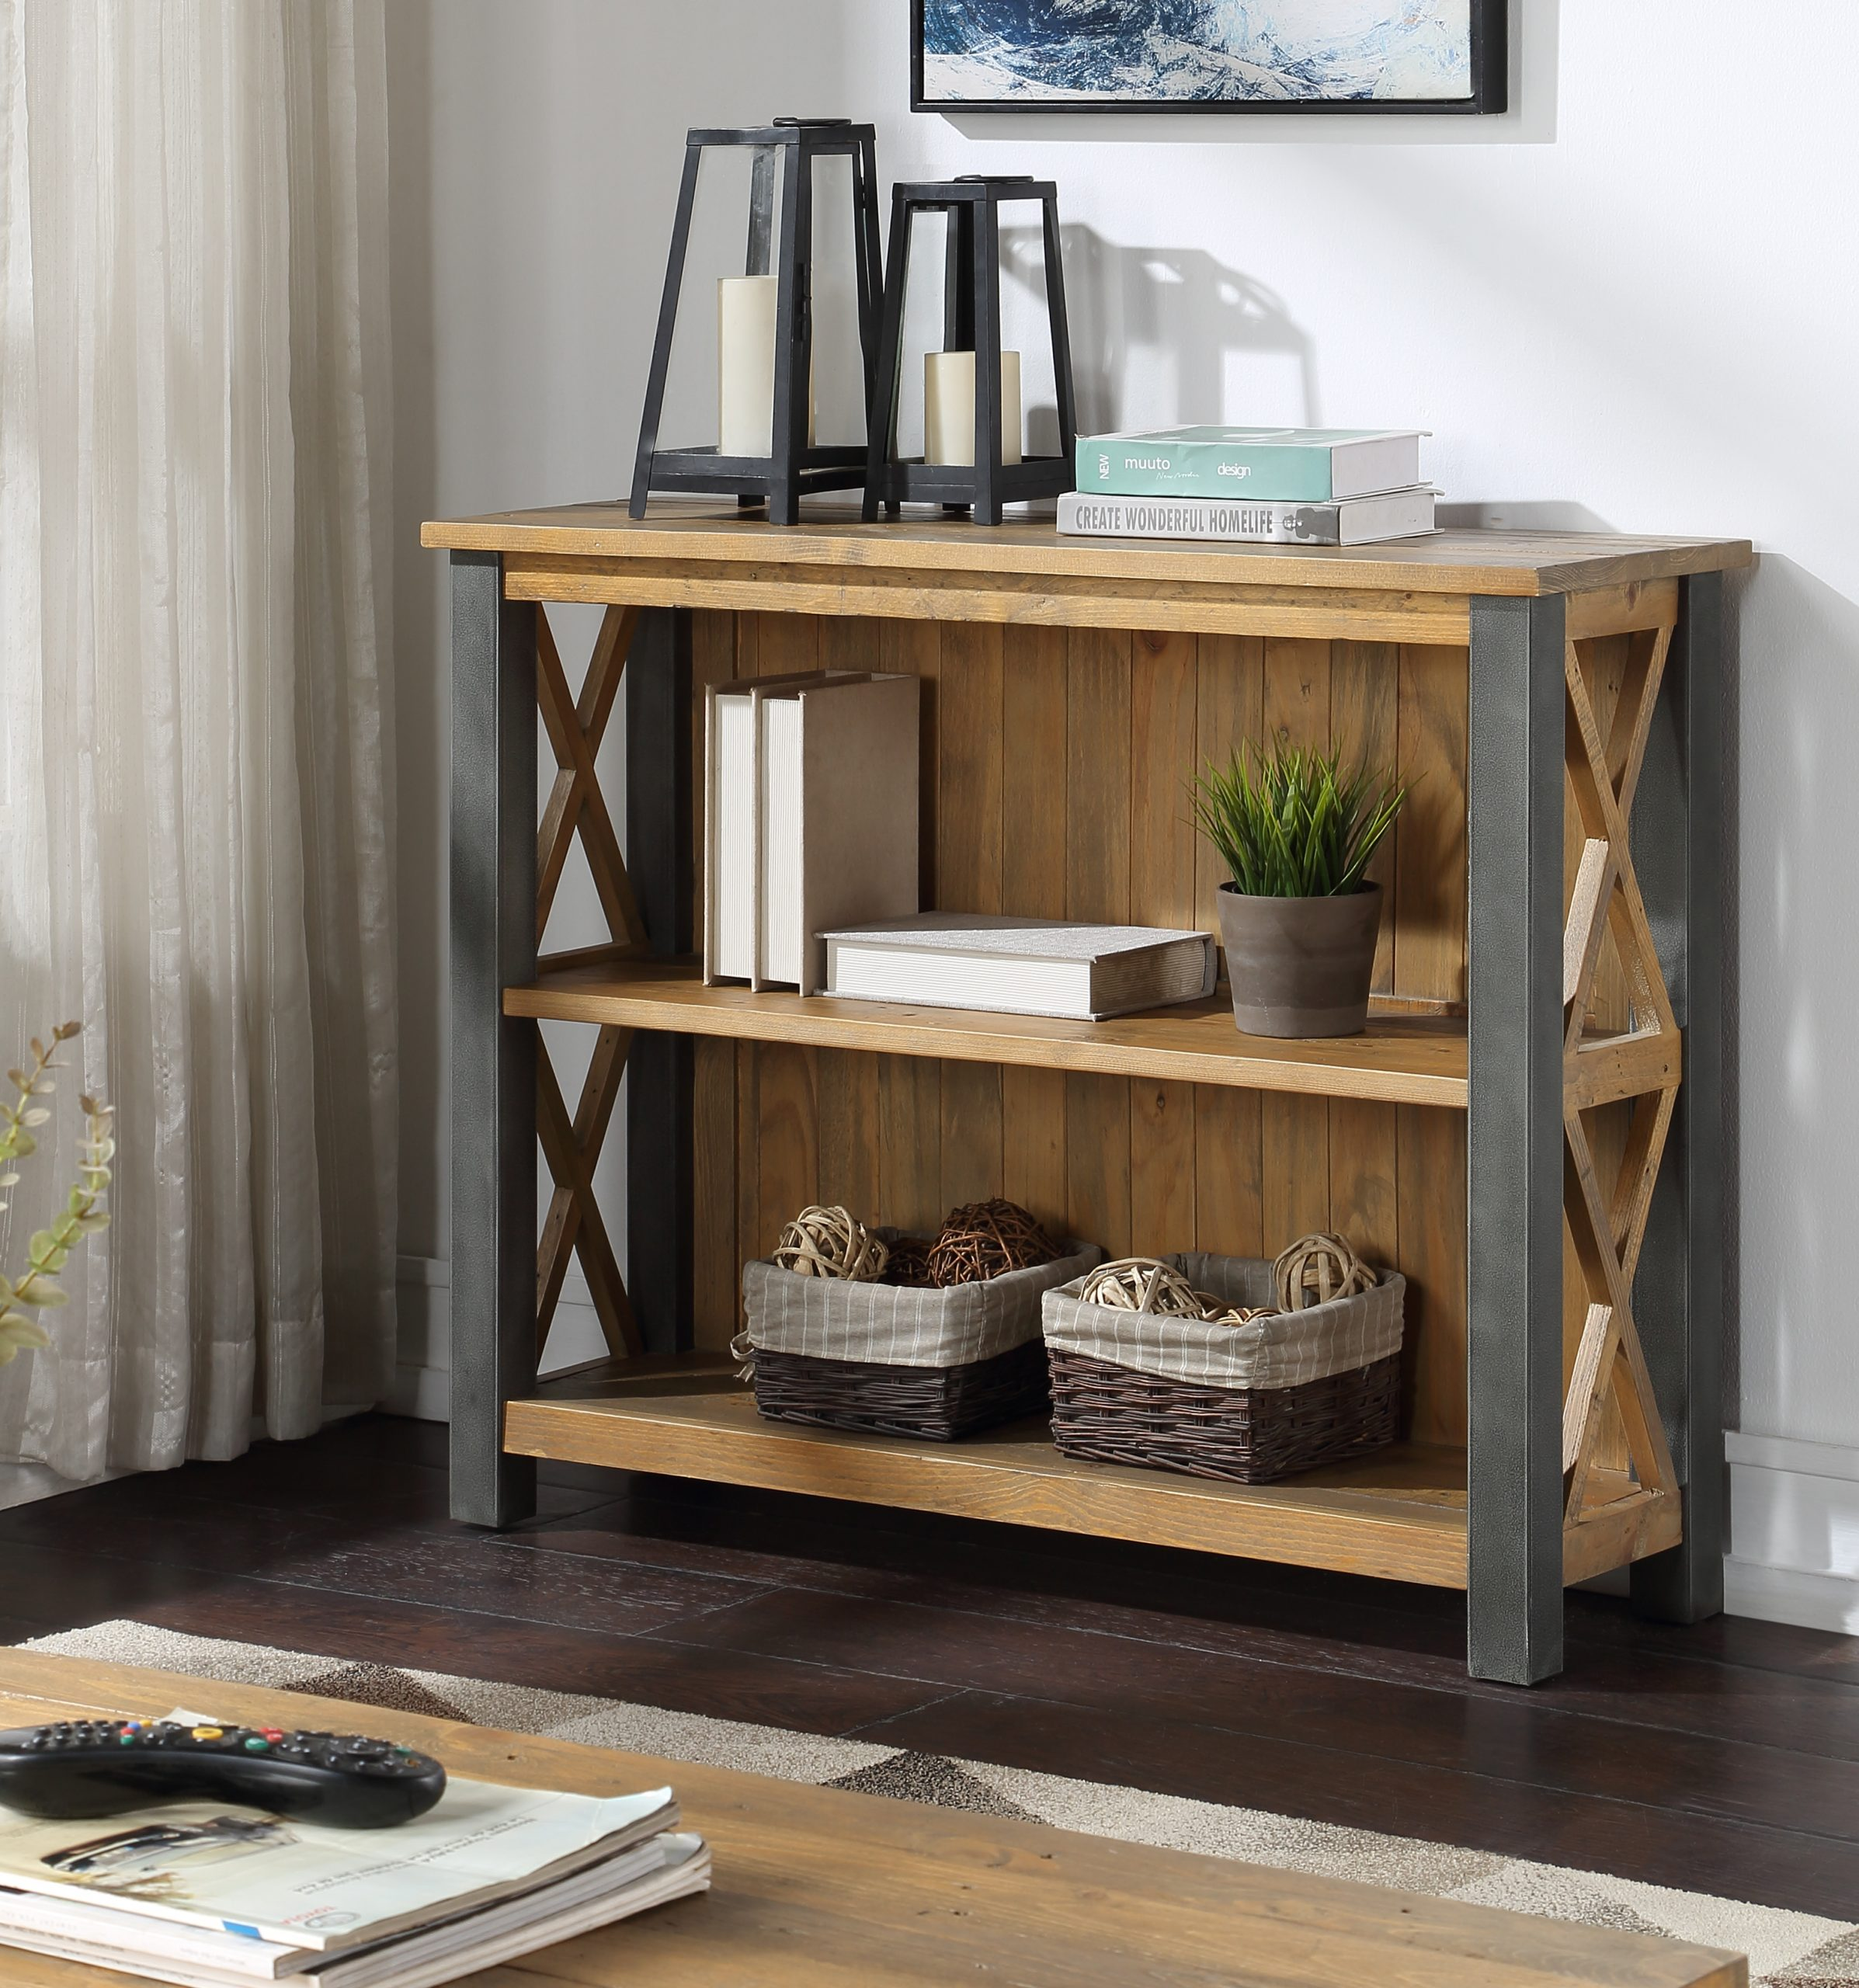 3-tier reclaimed wood bookcase